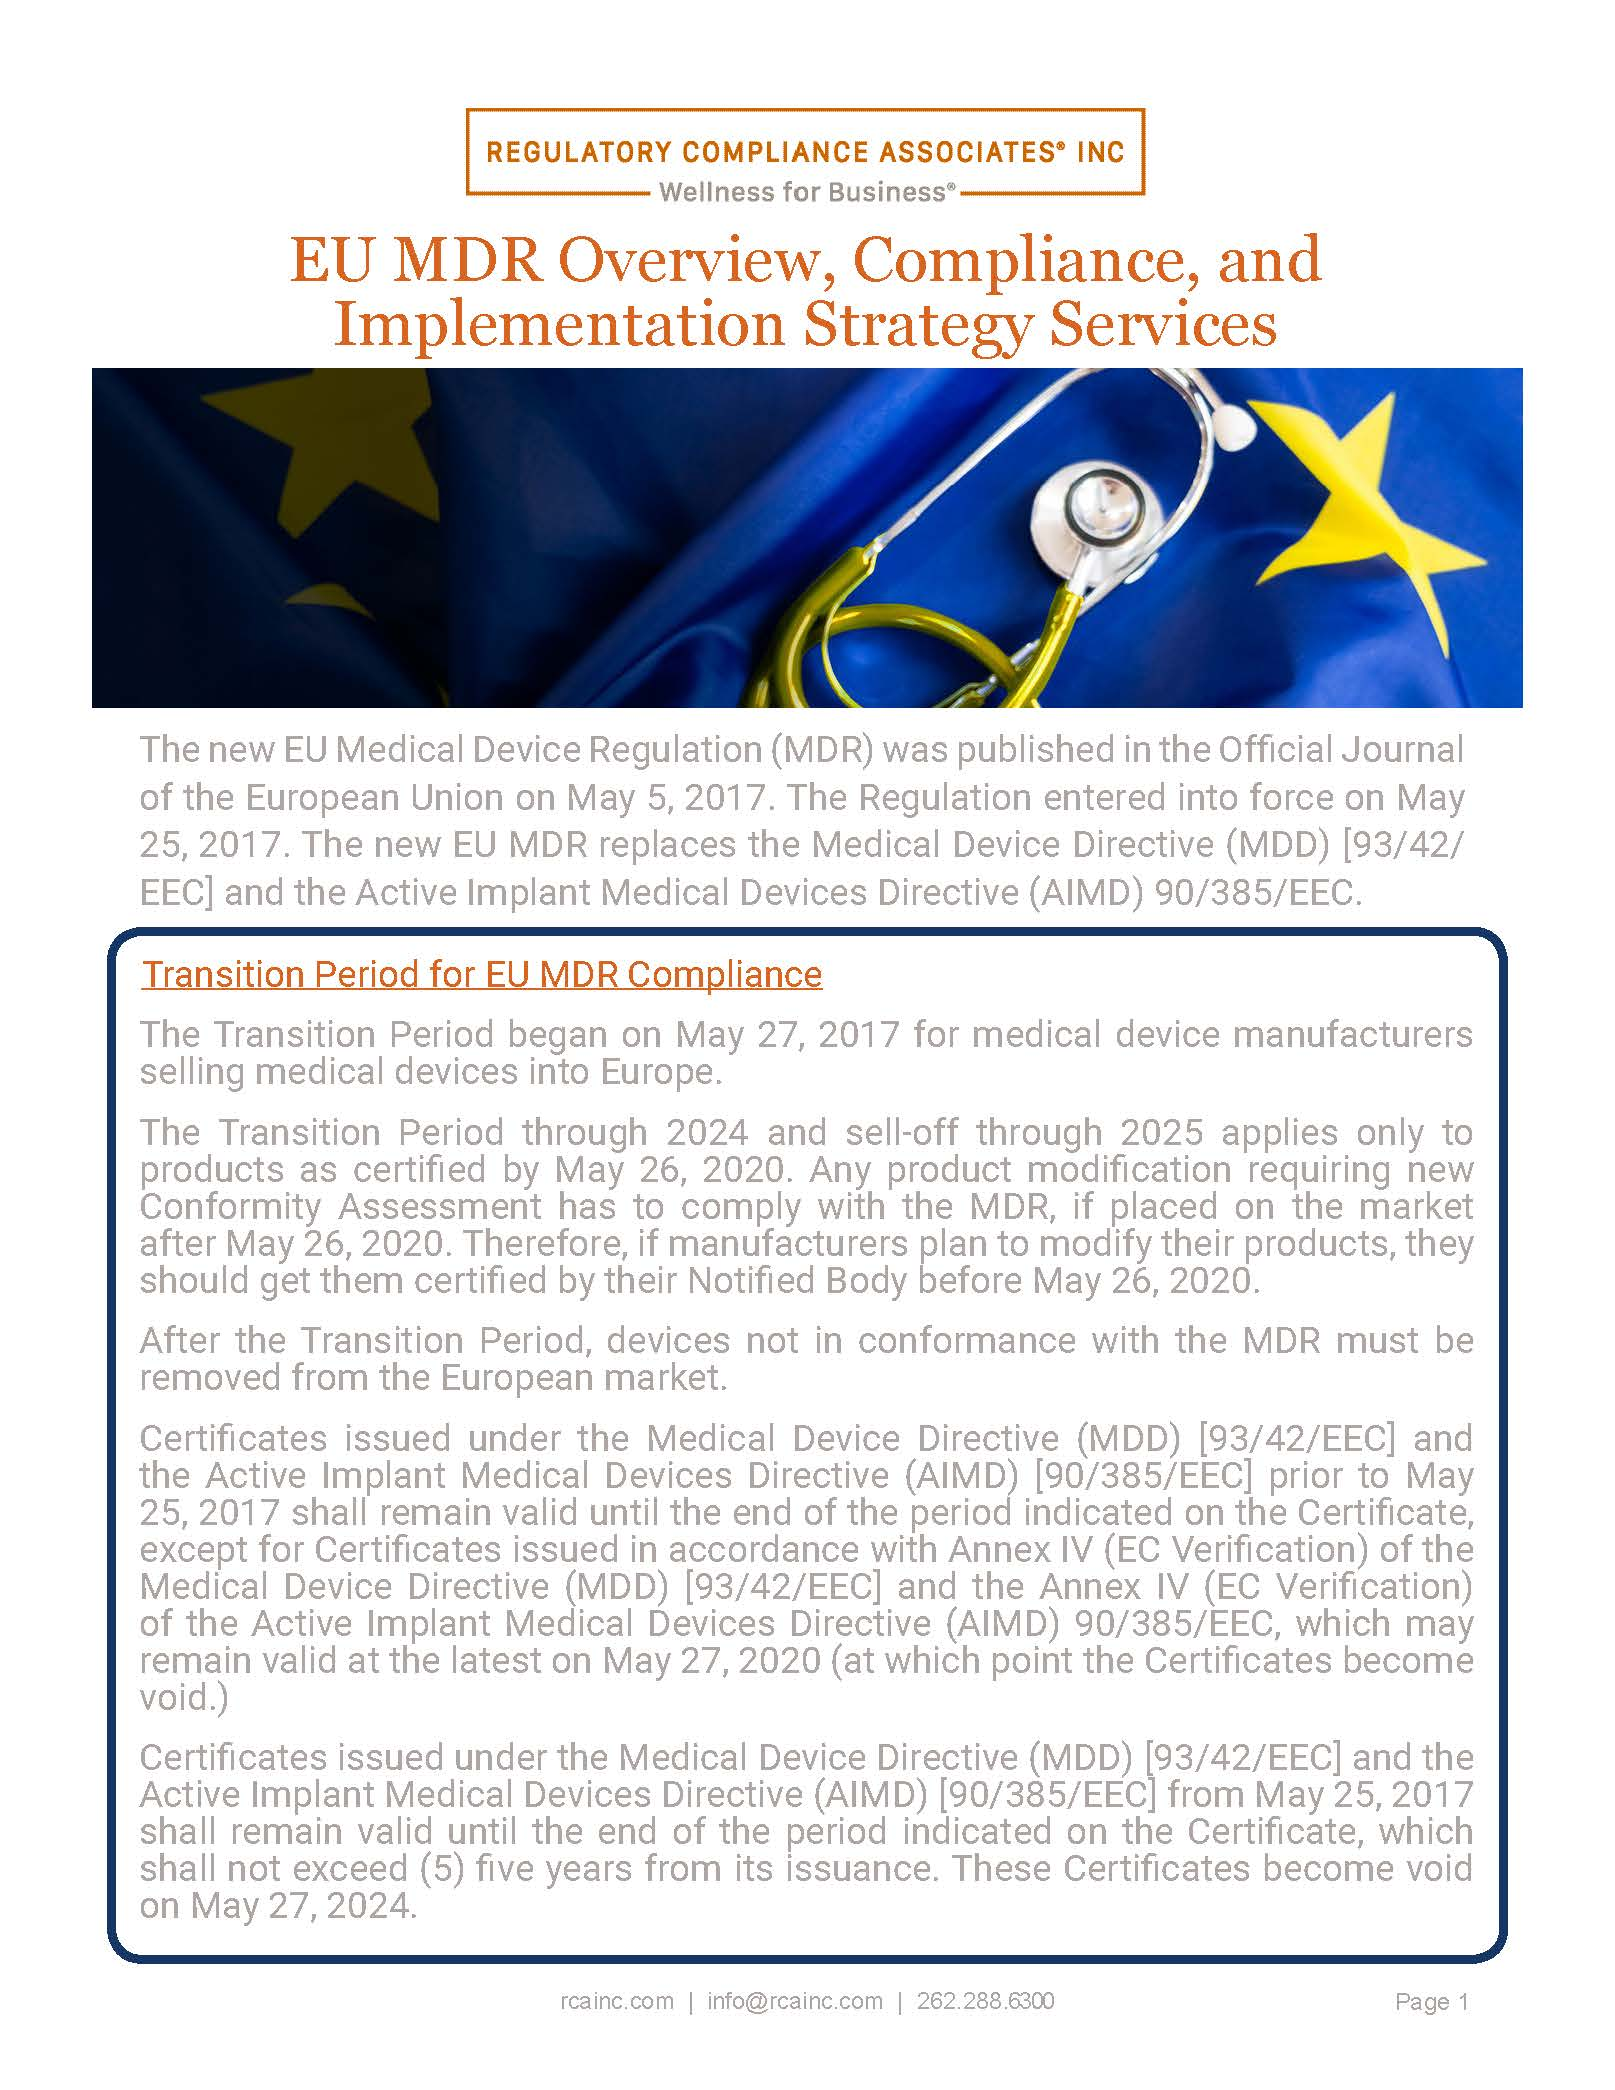 EU MDR Compliance and EU MDR Implementation Strategy Services